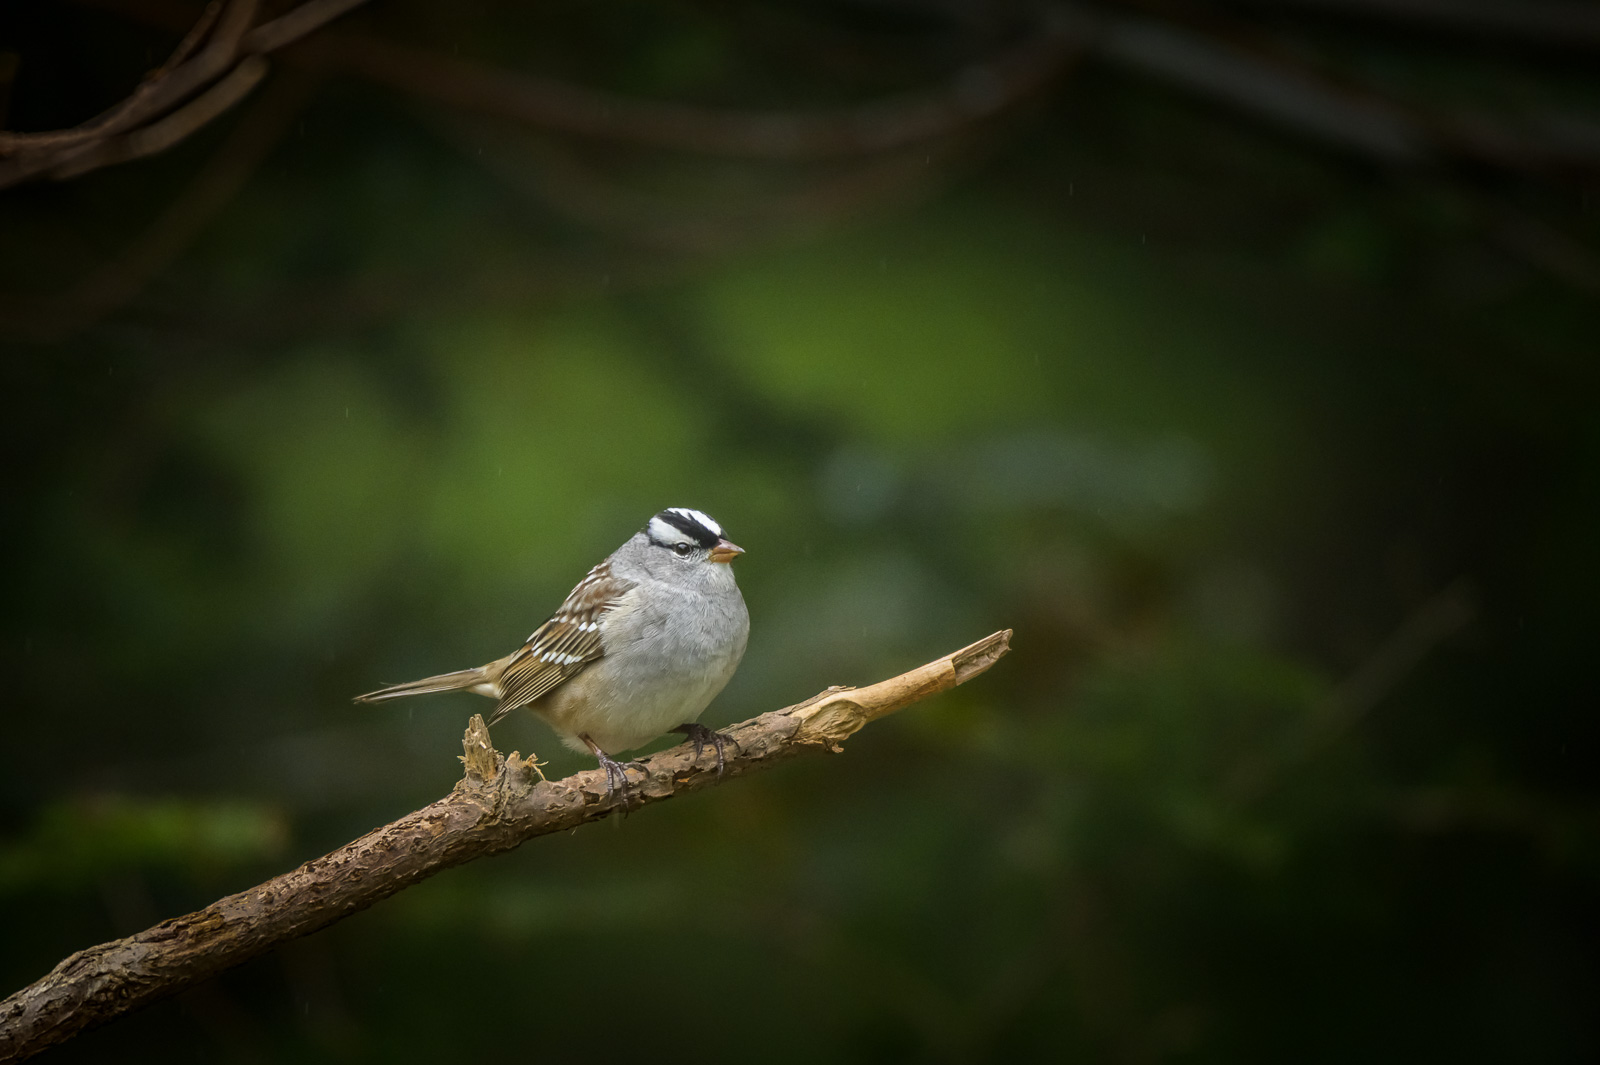 A bird on a branch: What's next for the photographer mom?